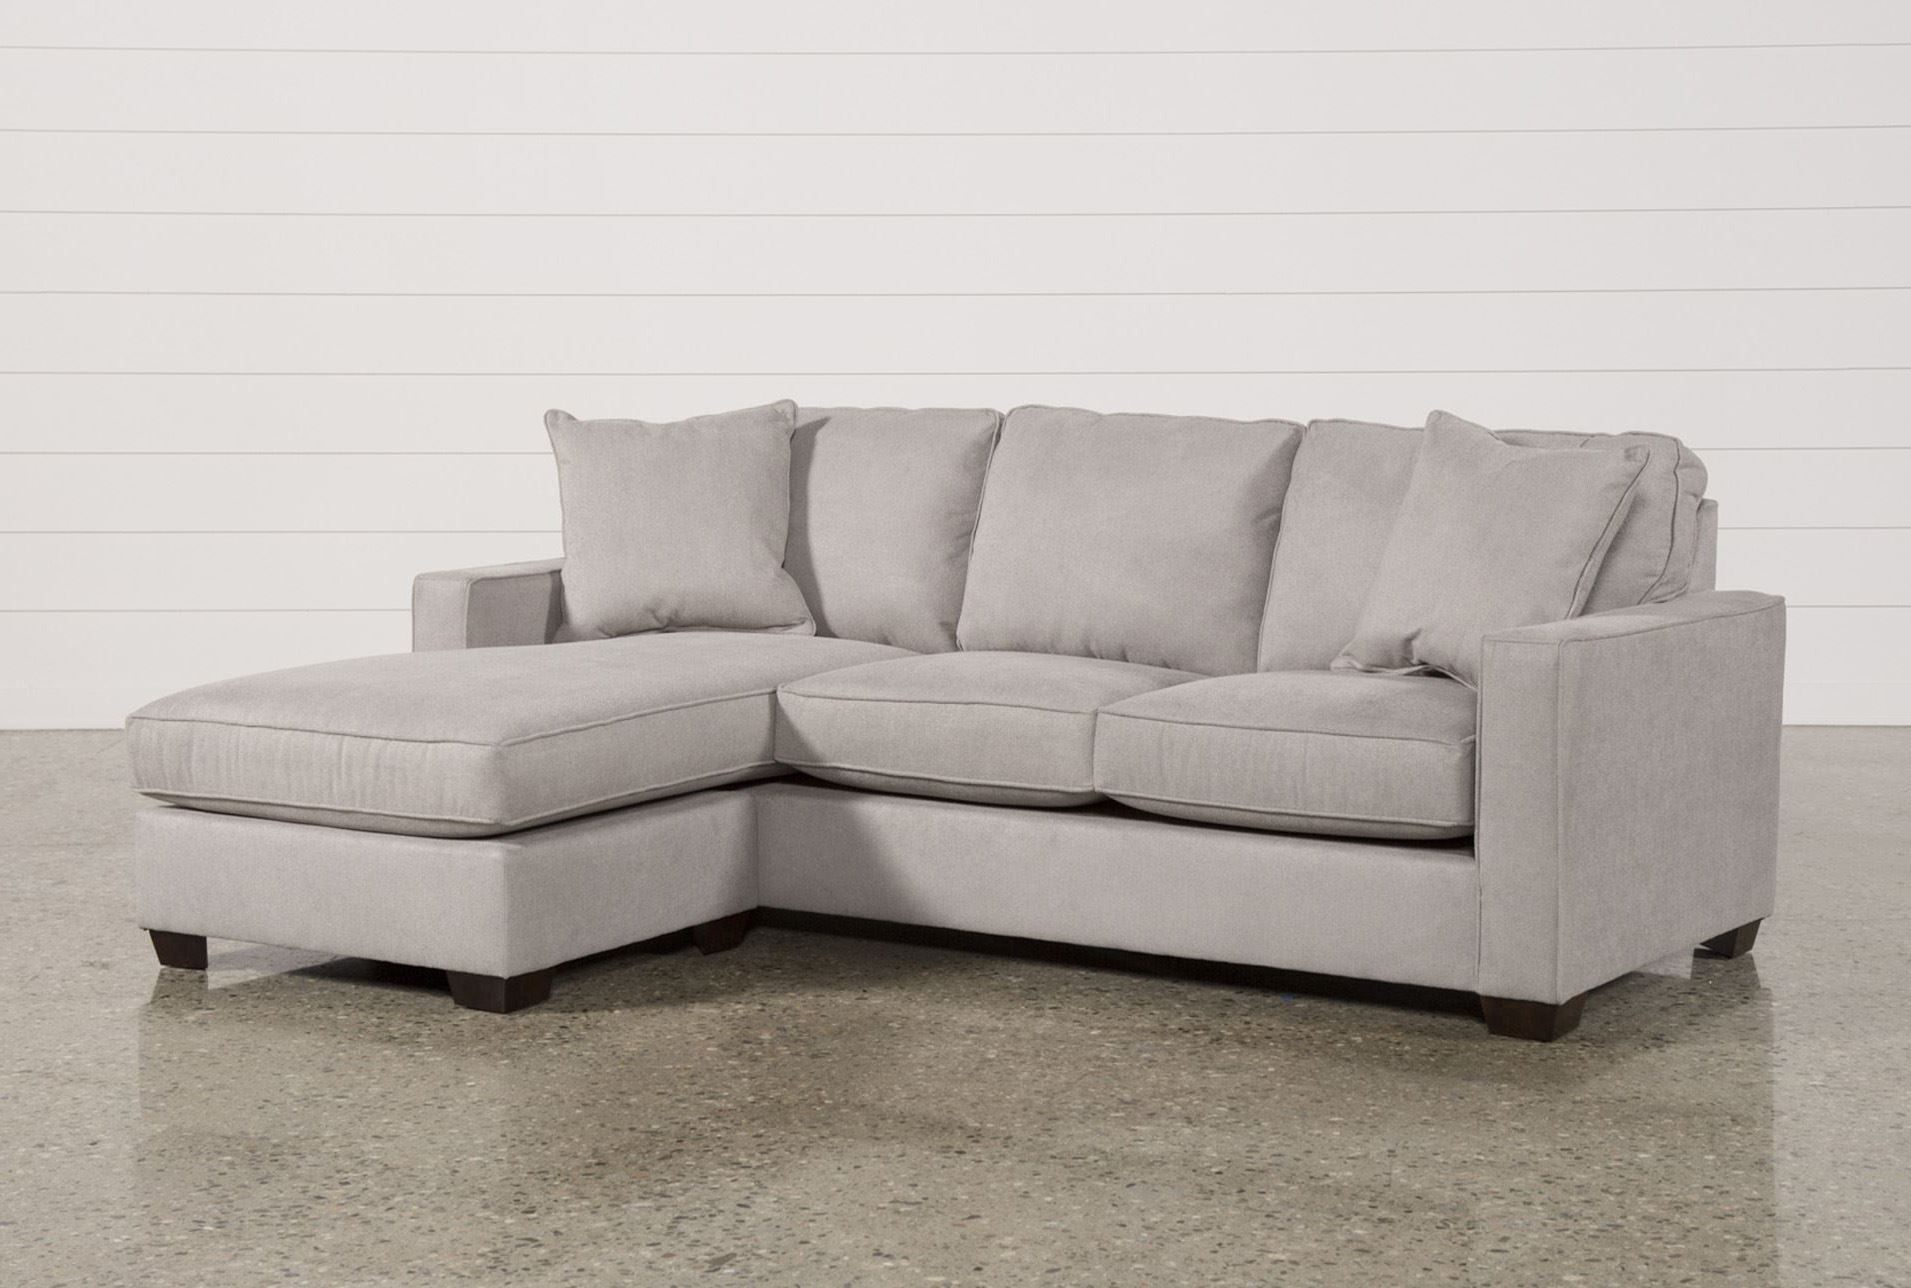 Egan Sofa With Reversible Chaise | Ezhandui inside Egan Ii Cement Sofa Sectionals With Reversible Chaise (Image 8 of 30)